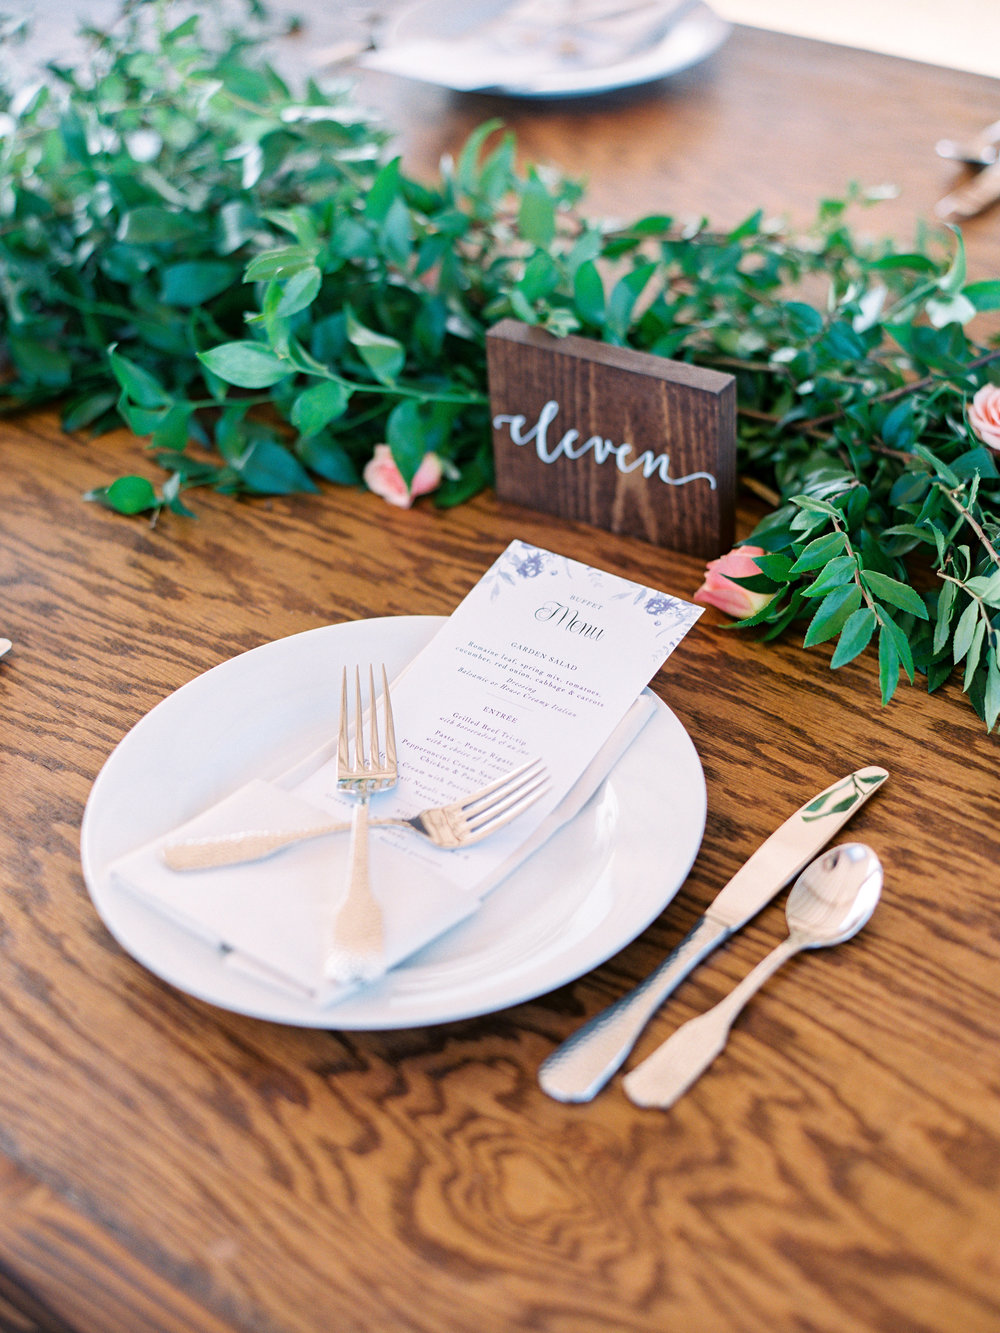 Dairy Farm Wedding - Tablescape Inspiration